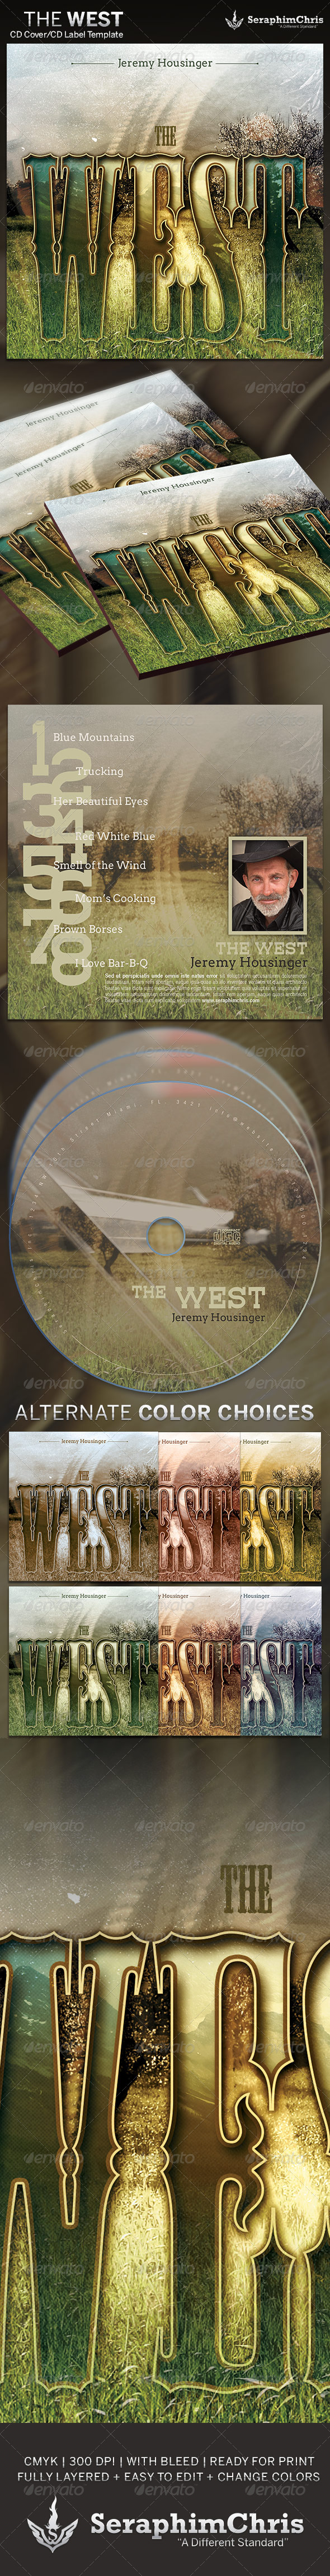 The West: CD Cover Artwork Template - CD & DVD Artwork Print Templates